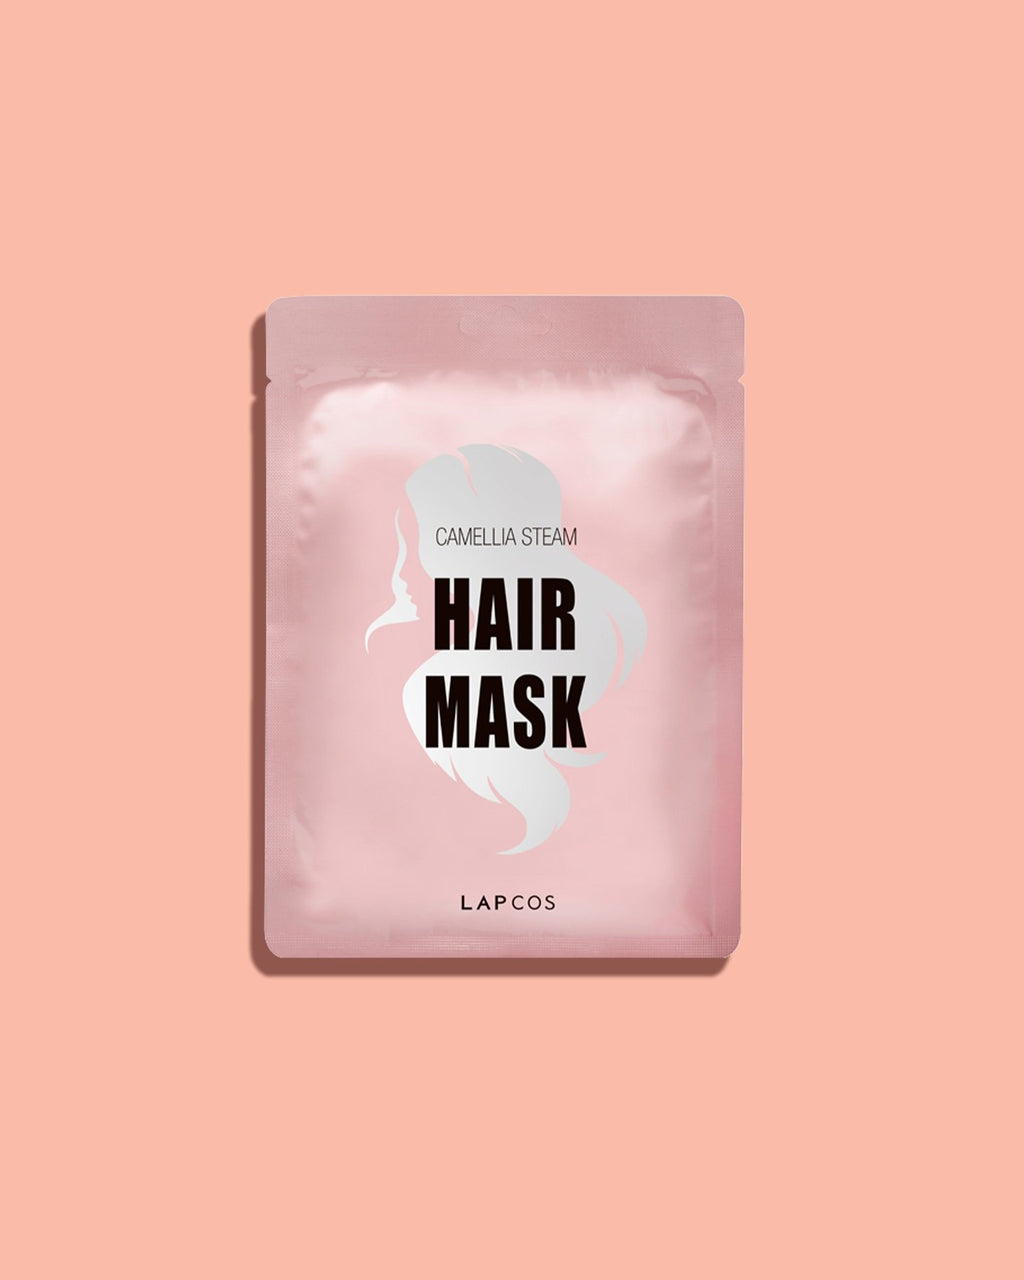 LAPCOS HAIR MASK